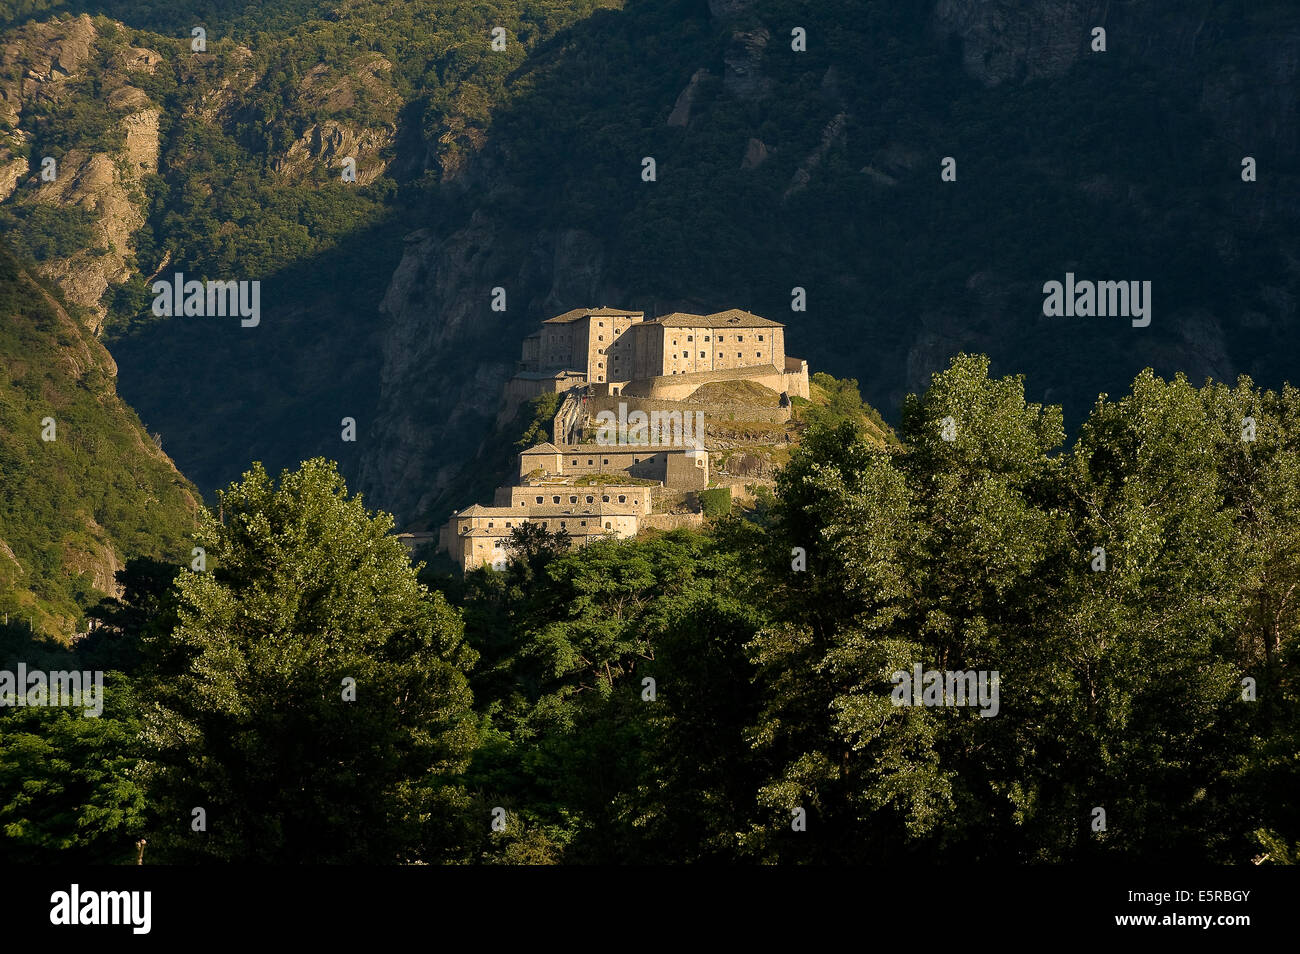 Italy Valle d'Aosta Bard the Fort - Stock Image